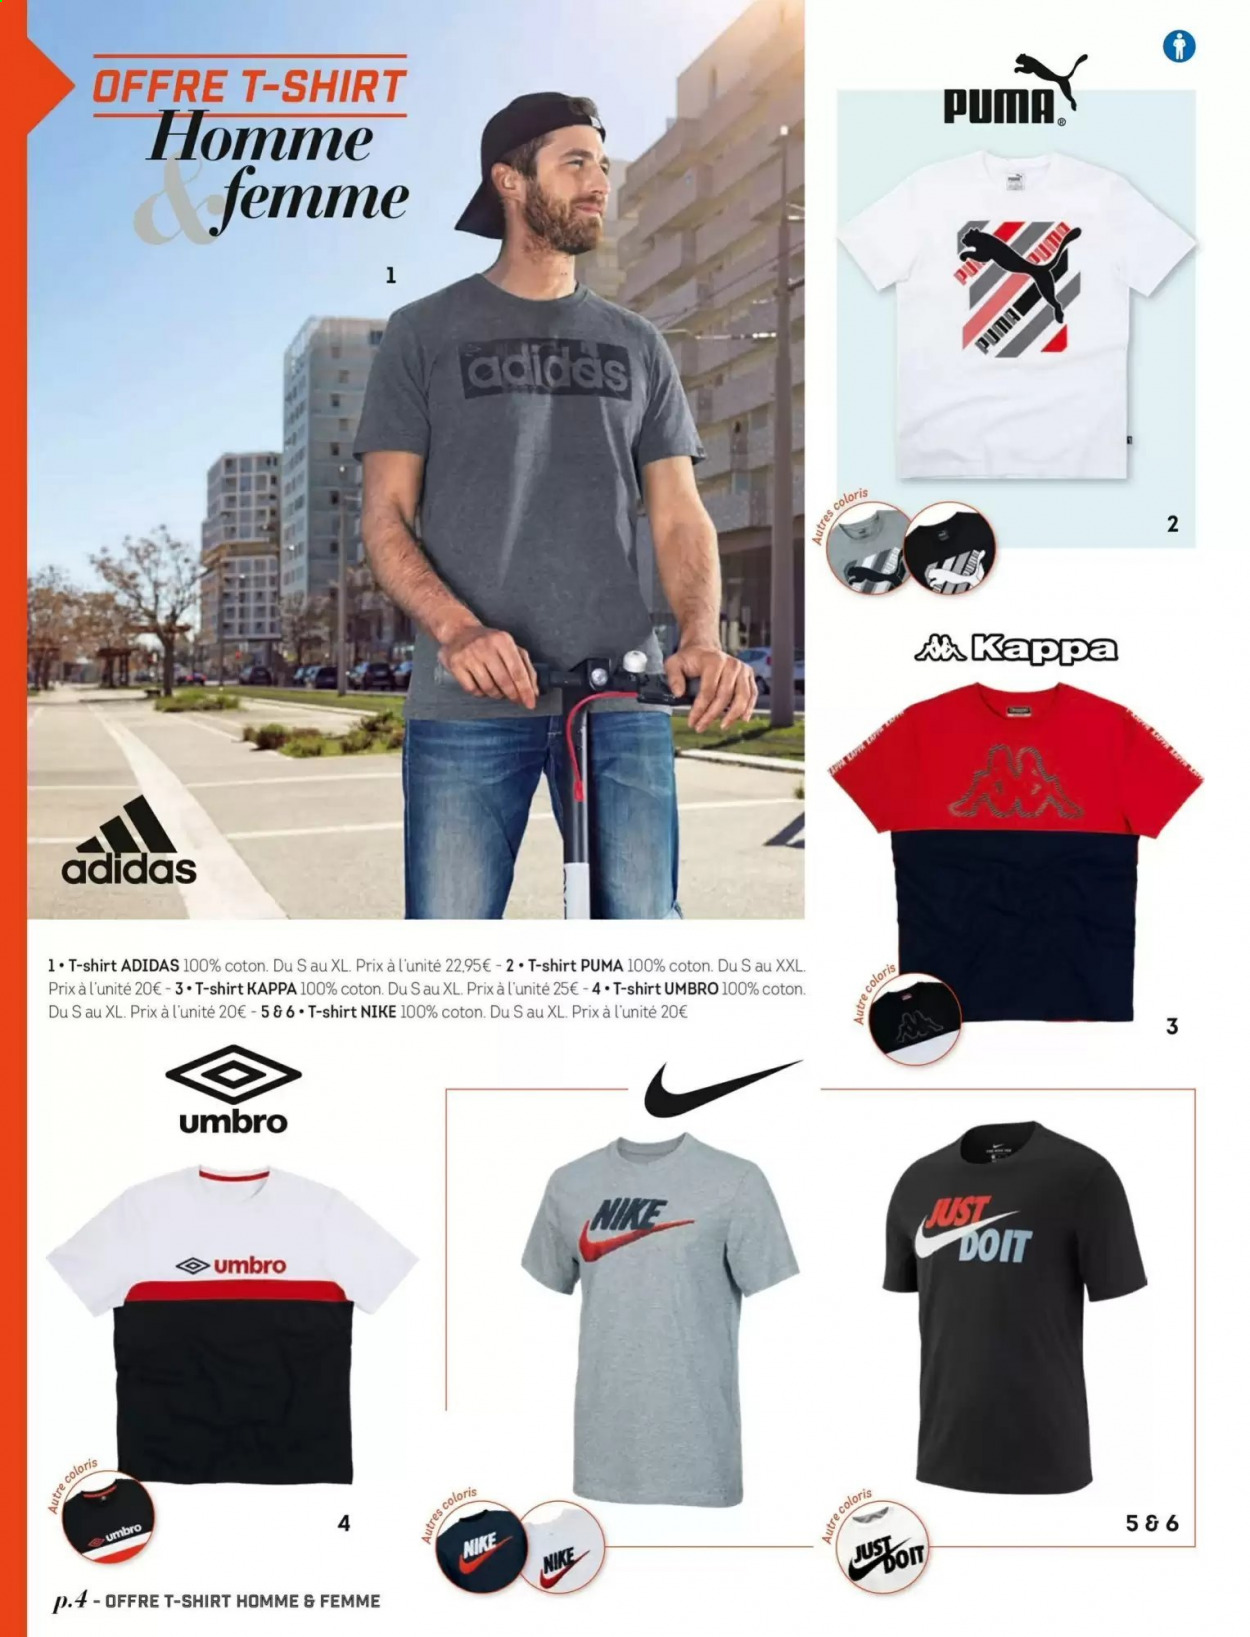 Catalogue Sport 2000 27.05.2020 21.06.2020 | Vos Promos